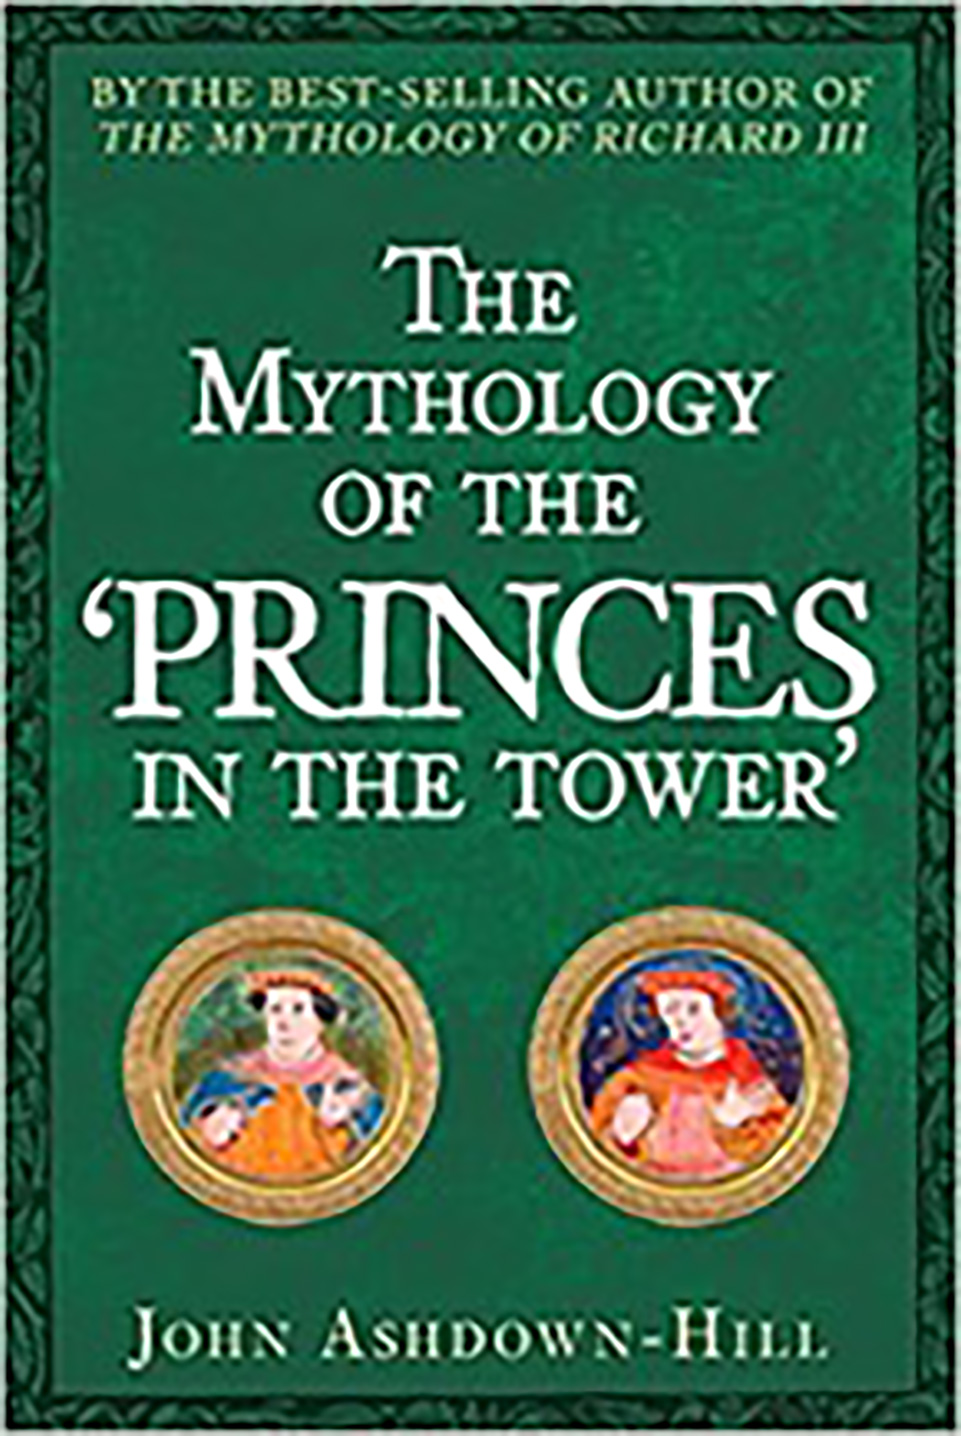 Front cover of a book: The Mythology of the Princes in the Tower by John Ashdown-Hill